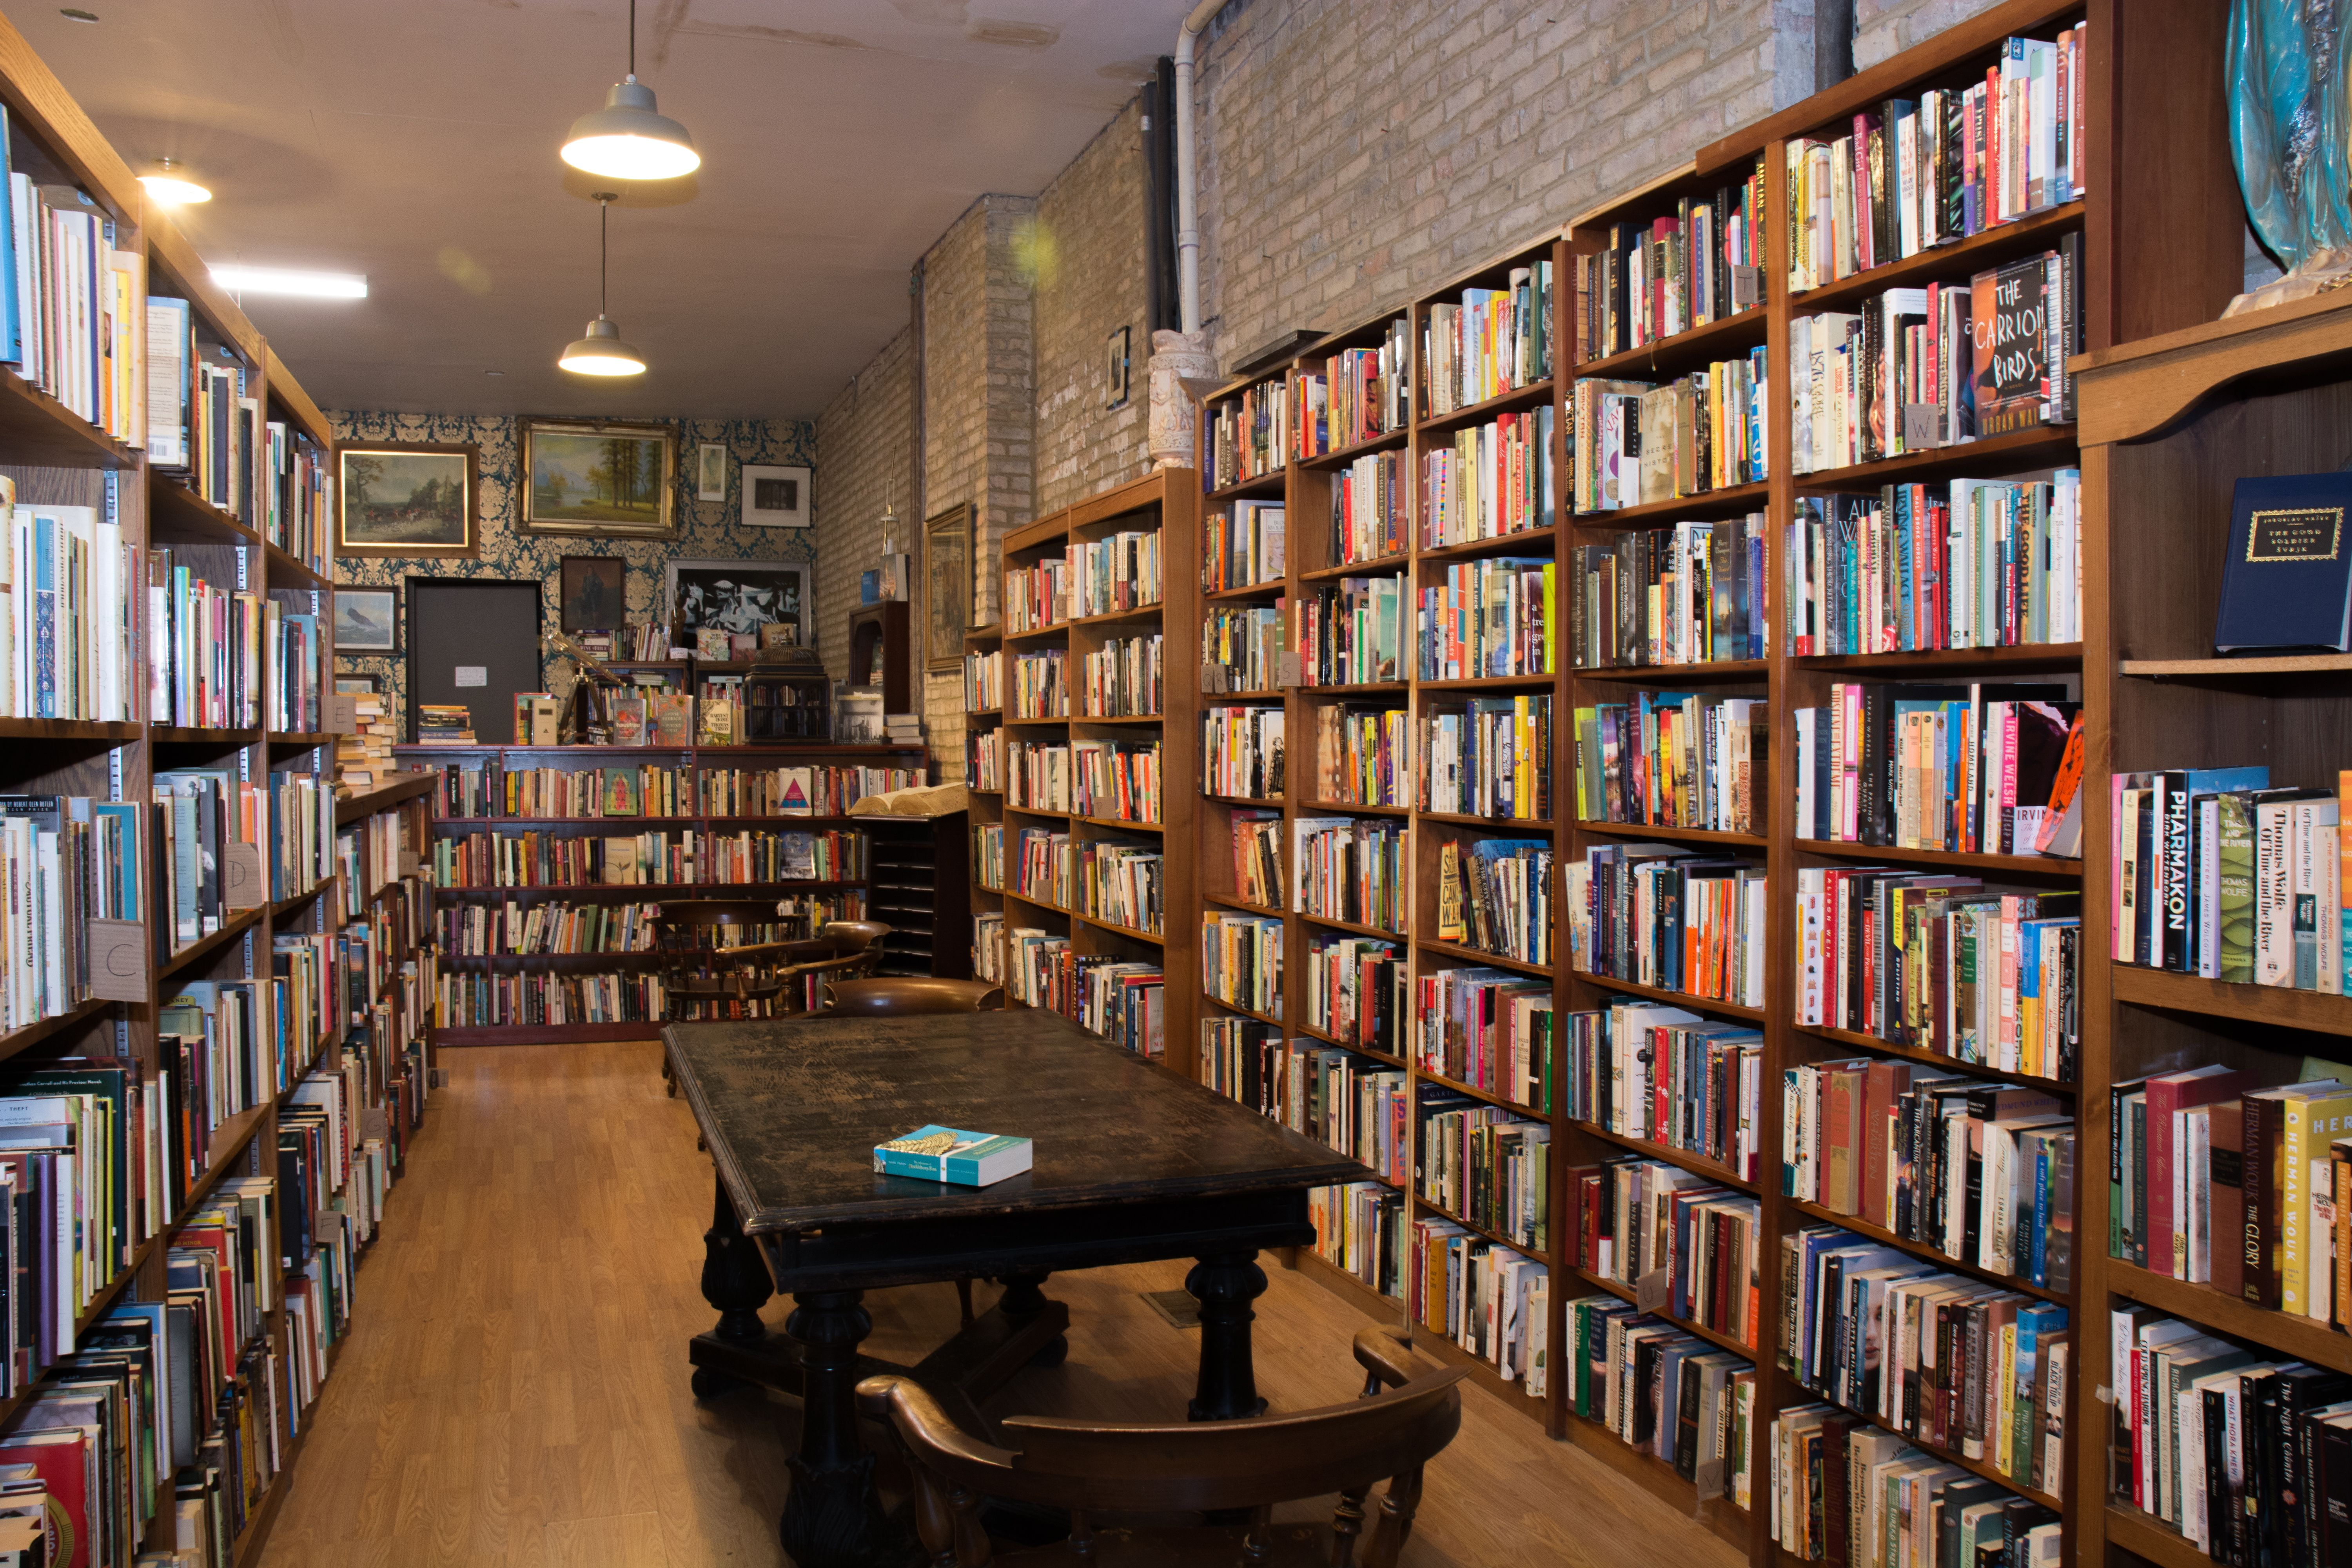 Small Business Saturday in Logan Square http://lsq.st/2ghaY4n